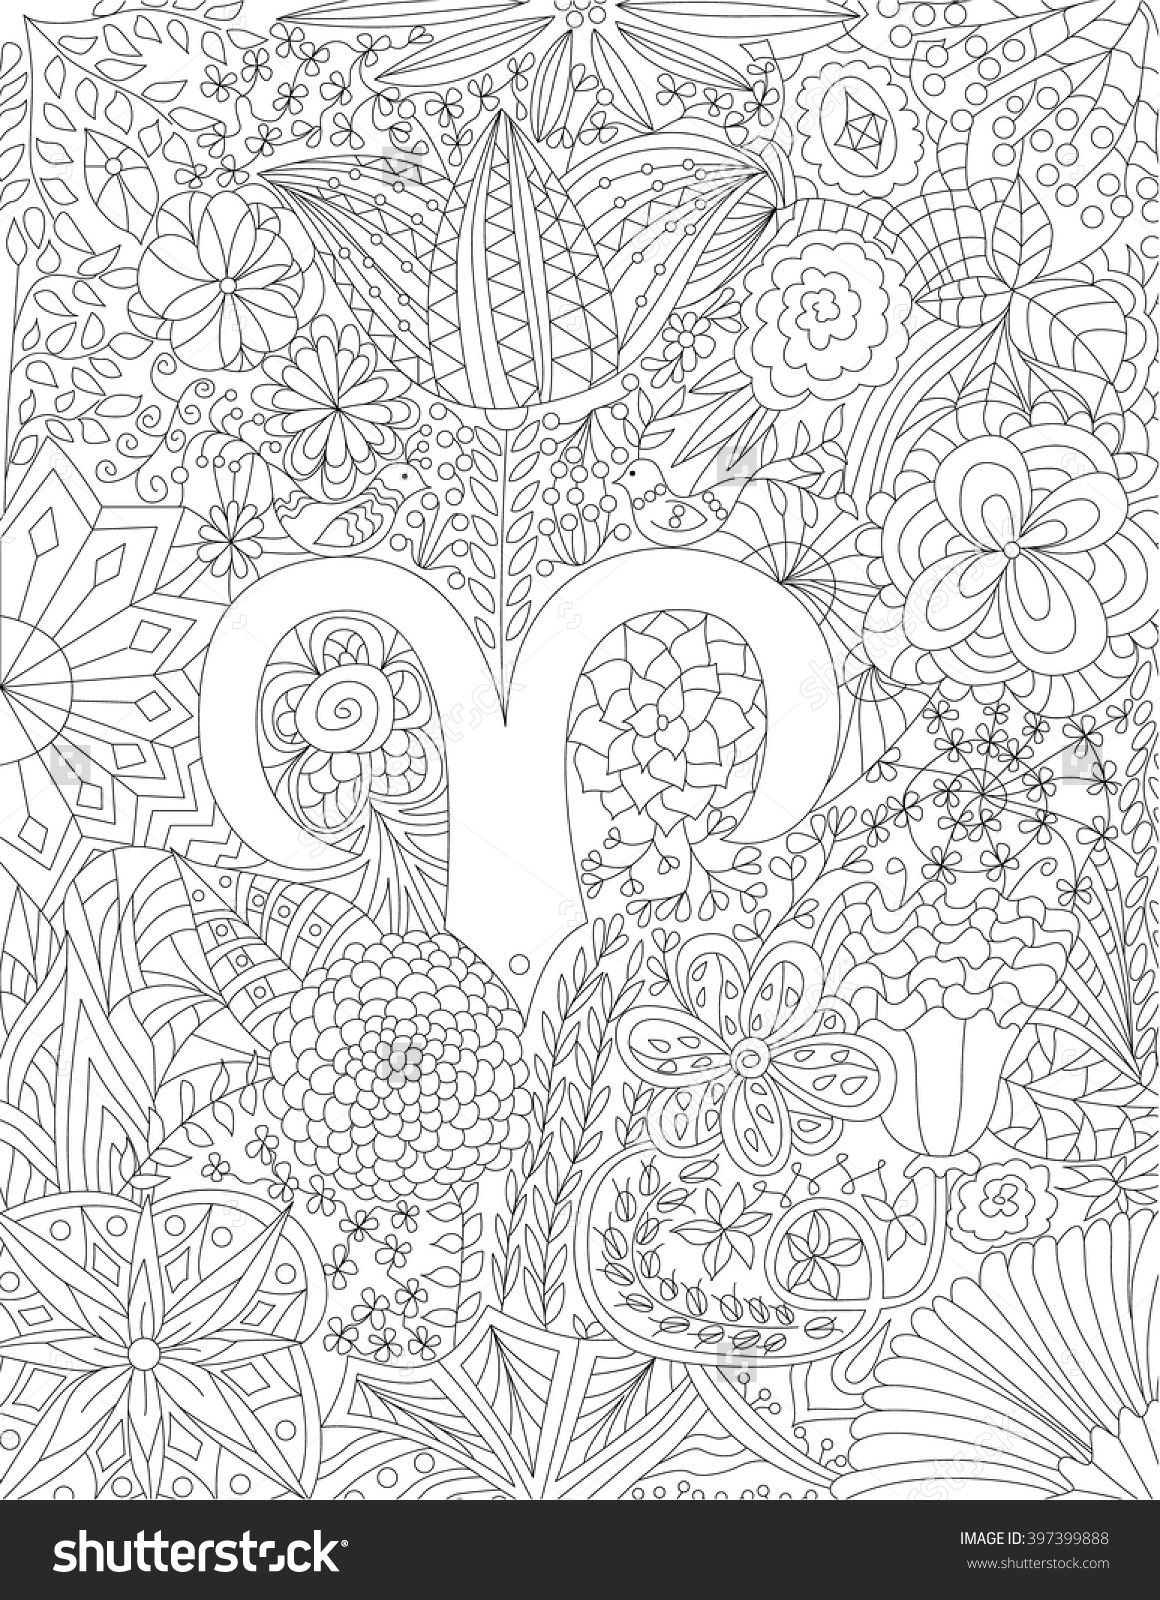 Zodiac Sign Aries Floral Geometric Doodle Pattern Coloring